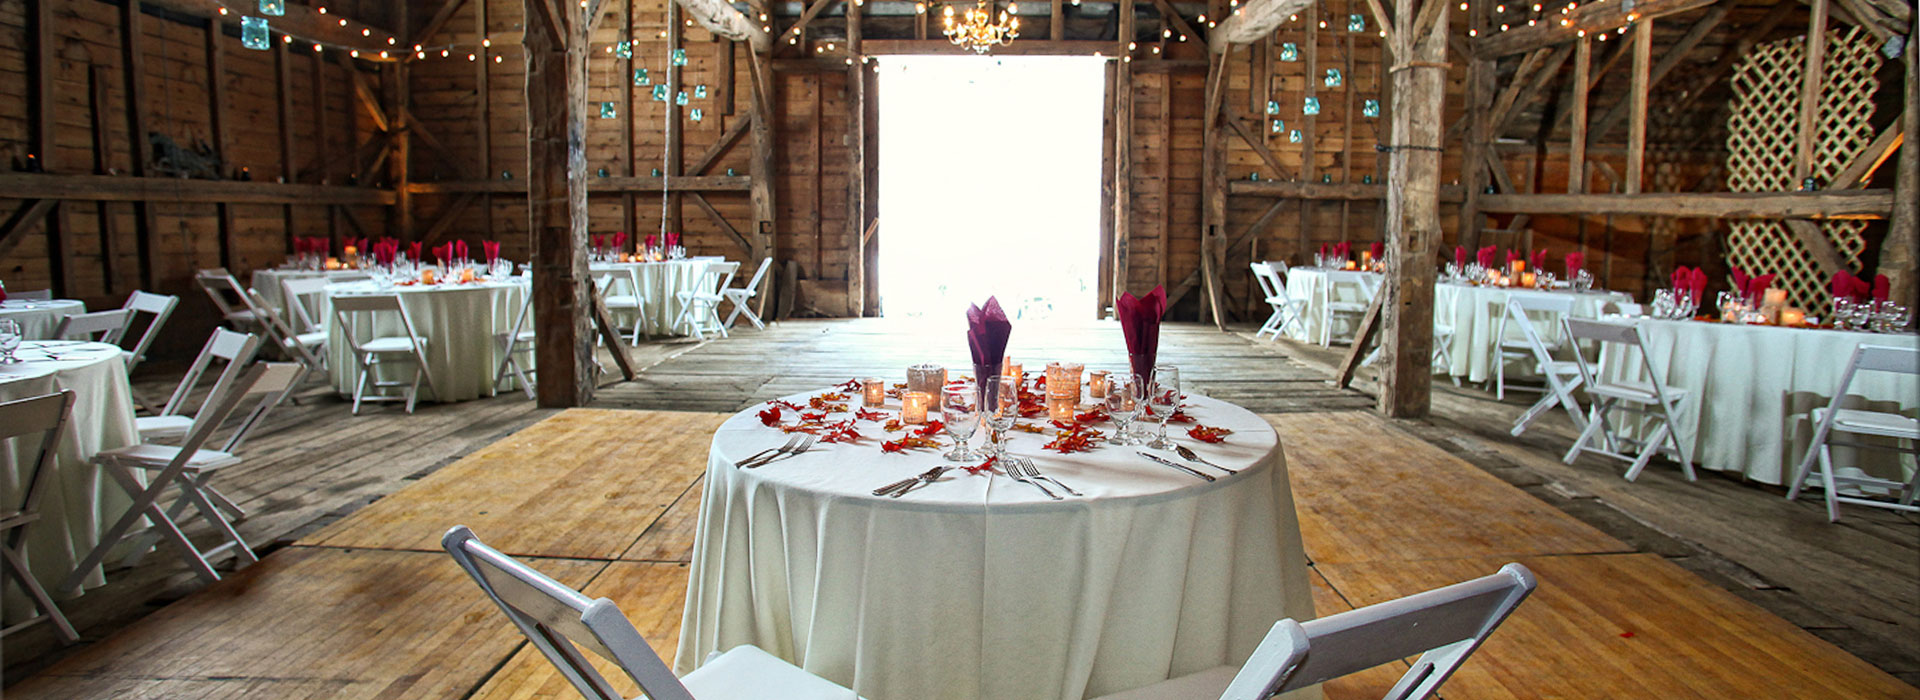 4 unique upstate new york wedding venues bridalpulse for Cool wedding venues nyc